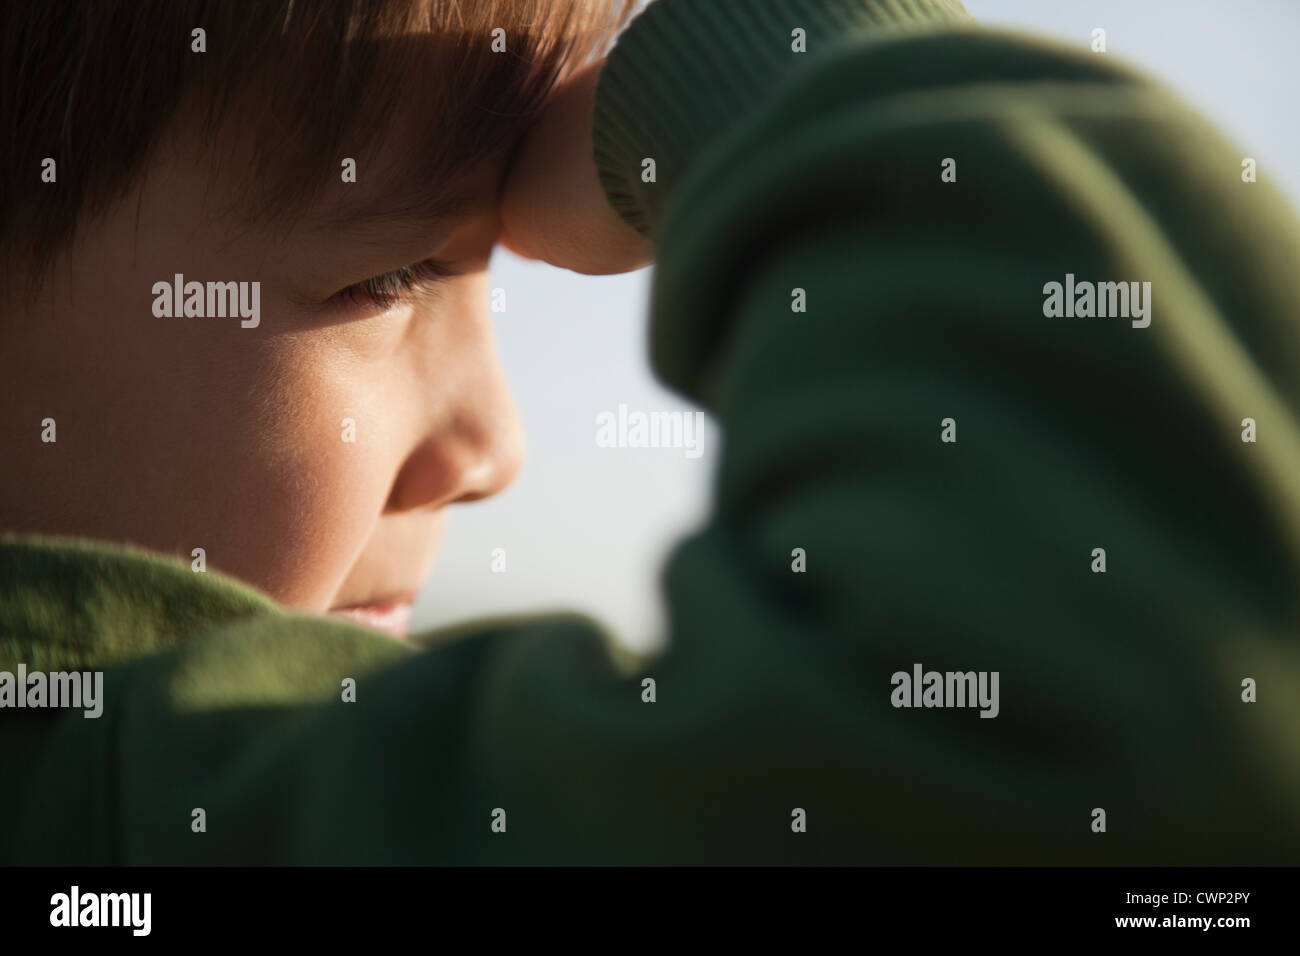 Boy shading eyes, side view Stock Photo